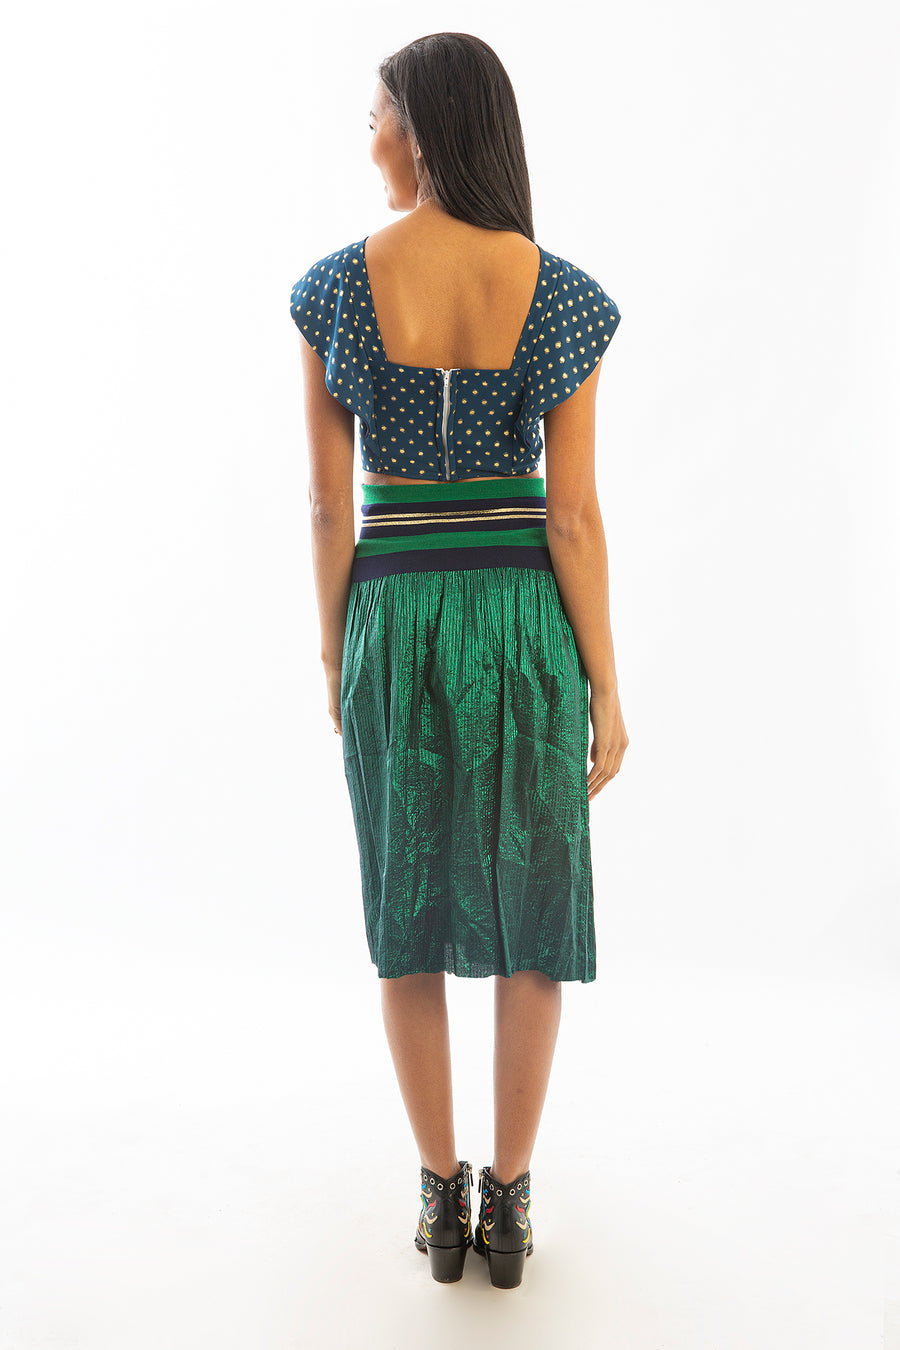 CARLISLE SKIRT GREEN METALLIC *LIMITED*EDITION*